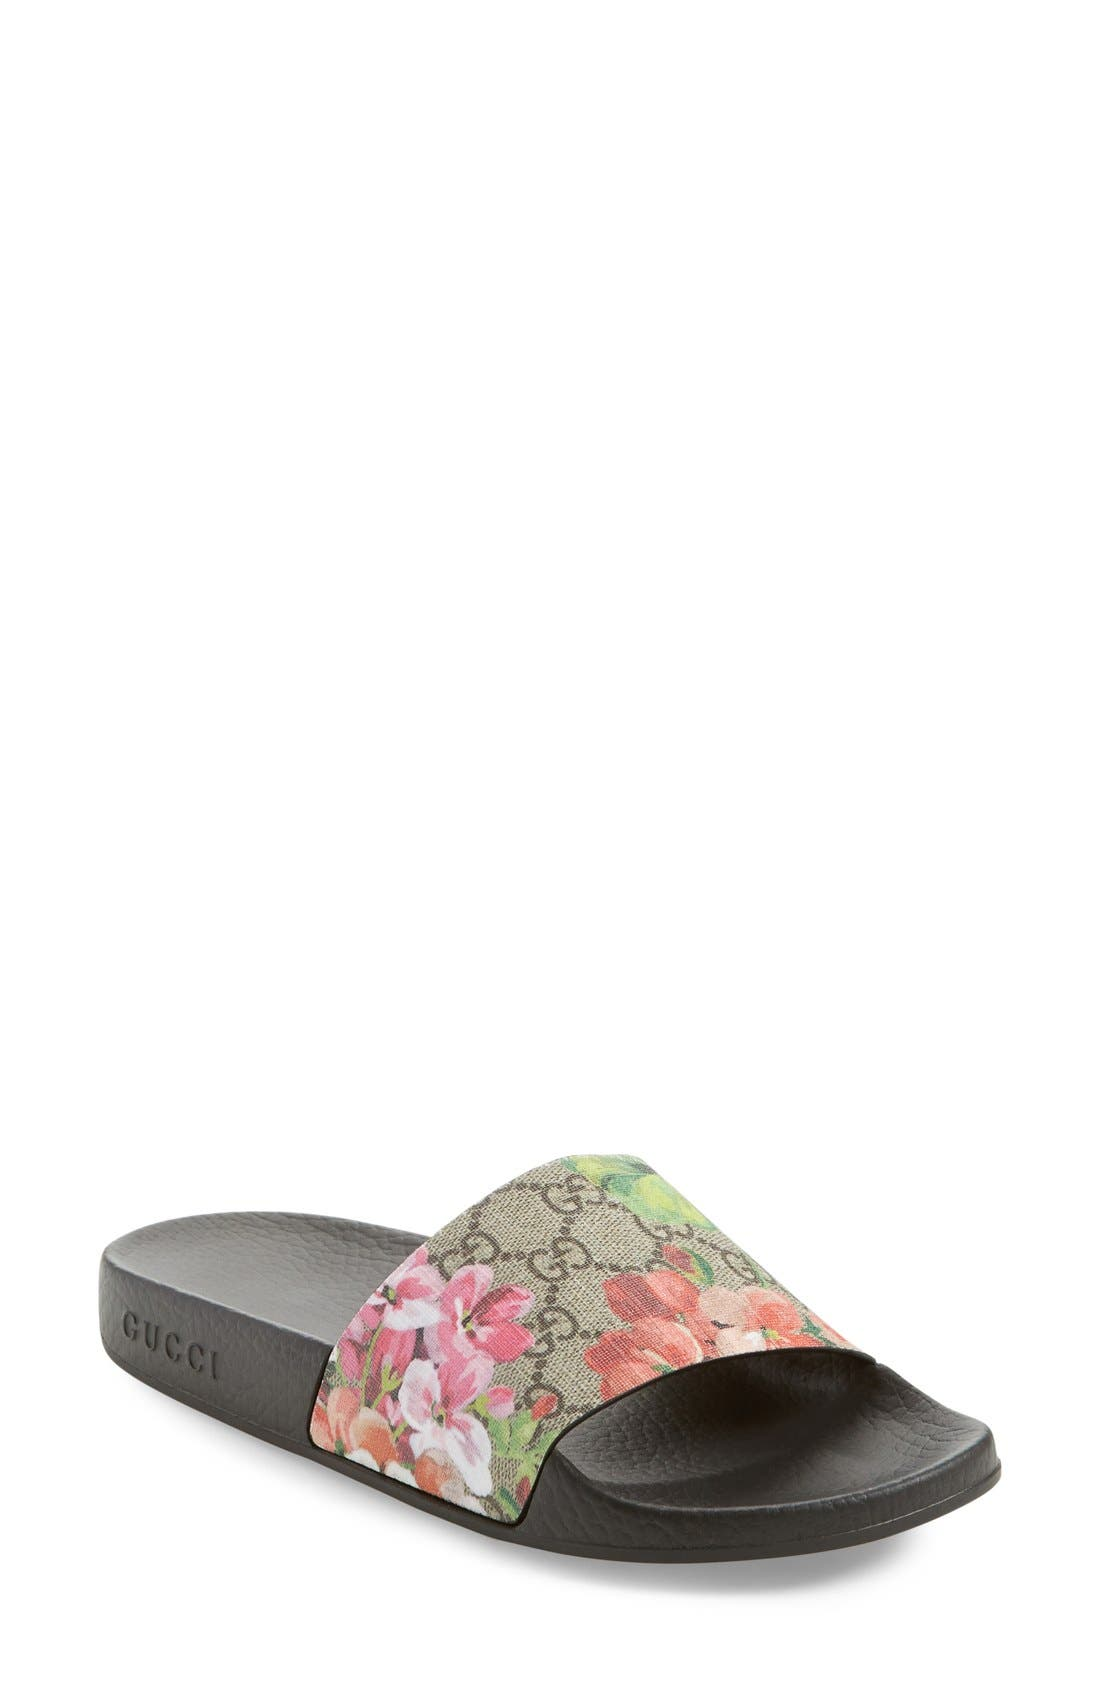 Pursuit Slide Sandal